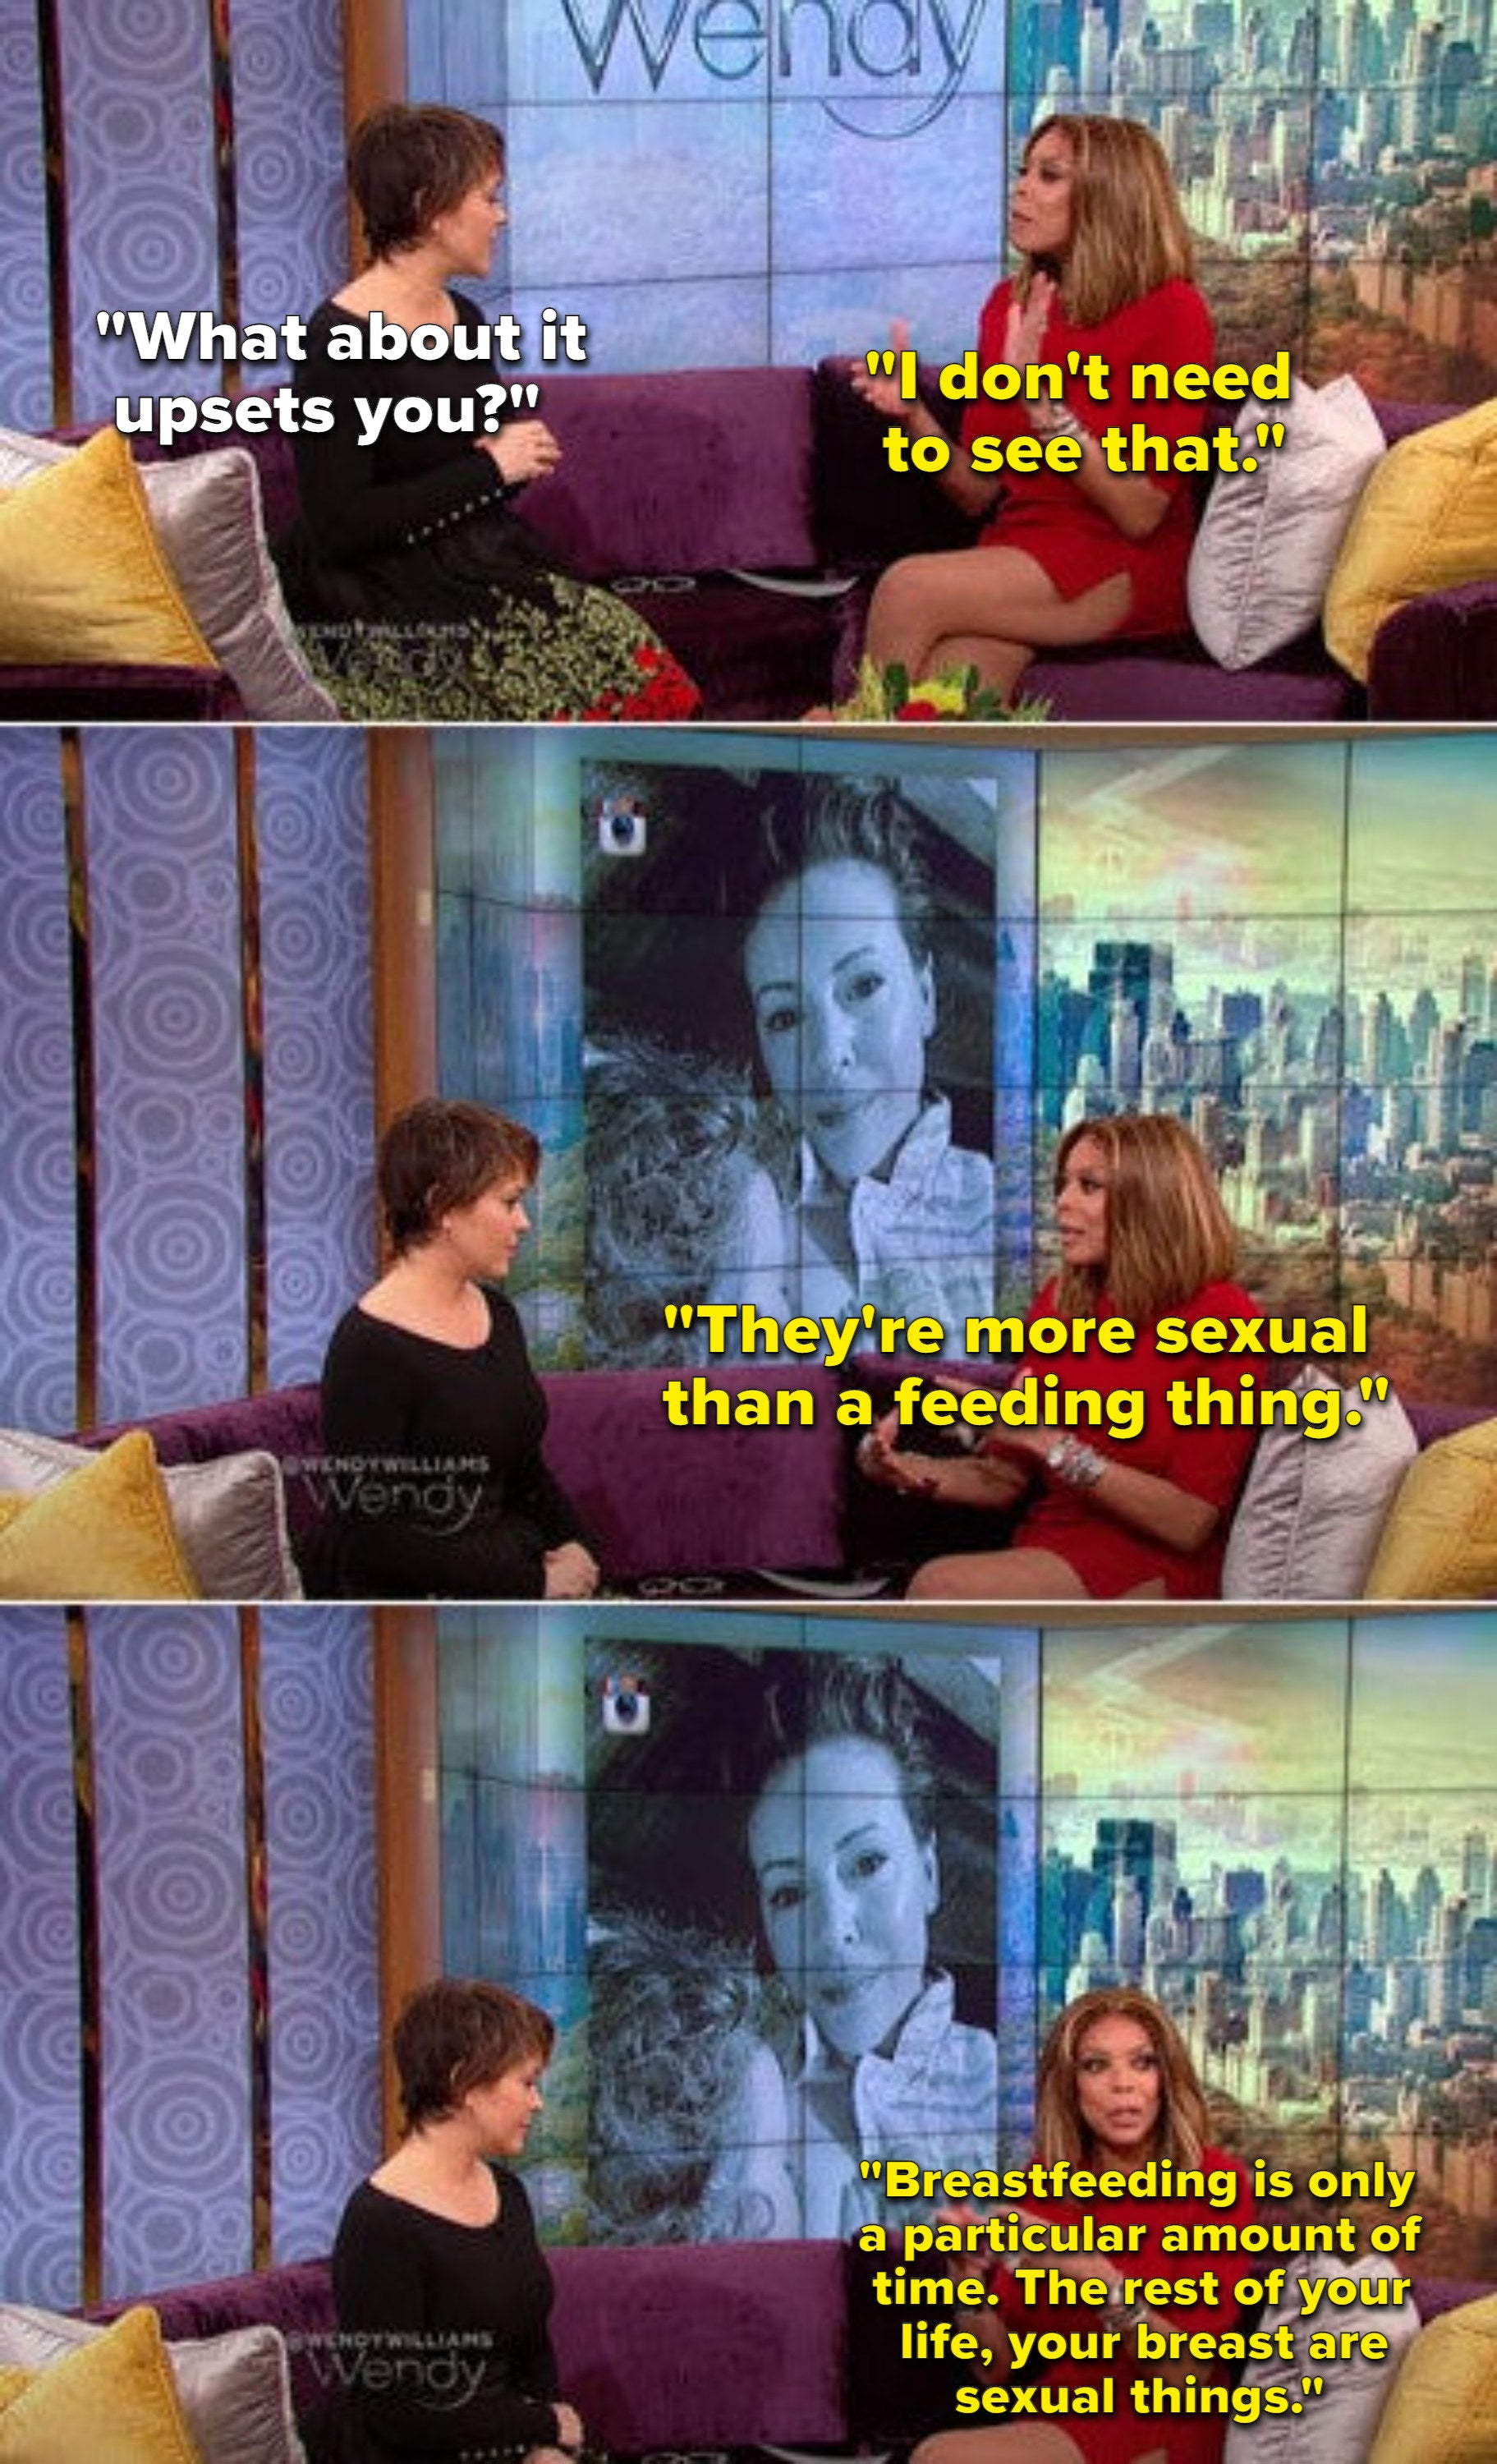 Wendy Williams telling Alyssa Milano that breastfeeding is a sexual thing and that she doesn't need to see it